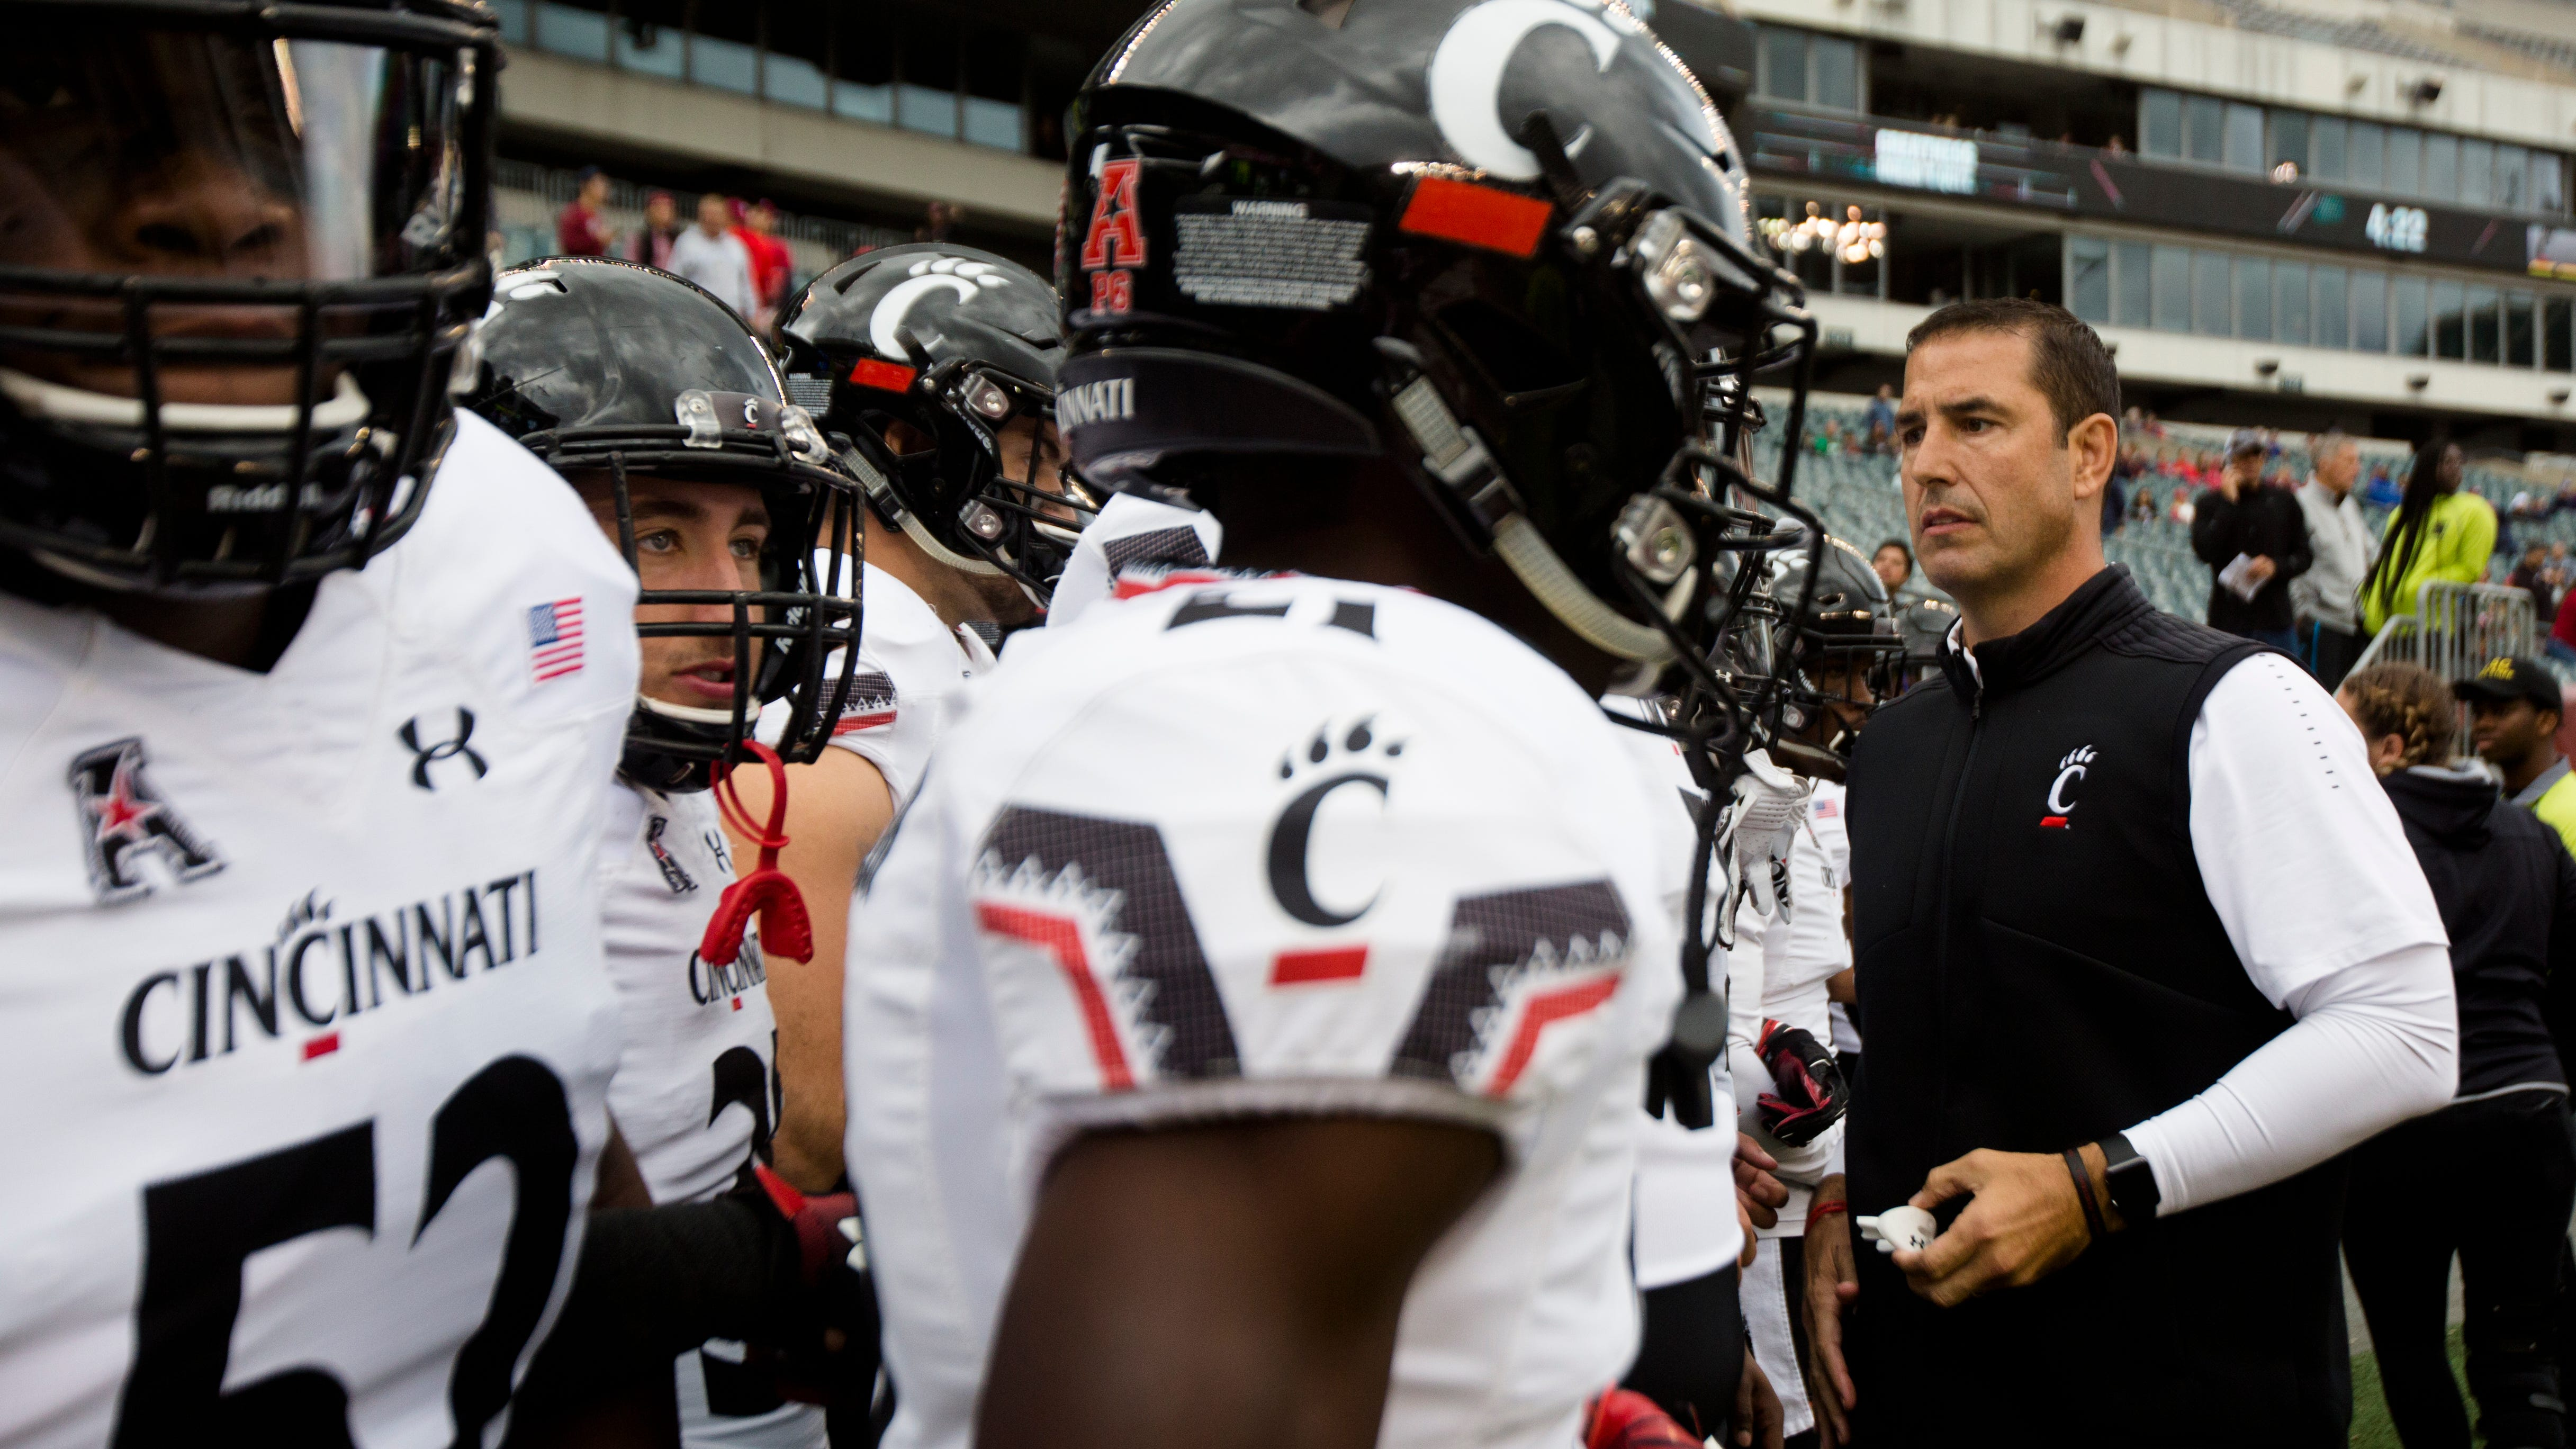 UC's Luke Fickell, players look ahead to SMU: 'Very upbeat, but we've got a long way to go'